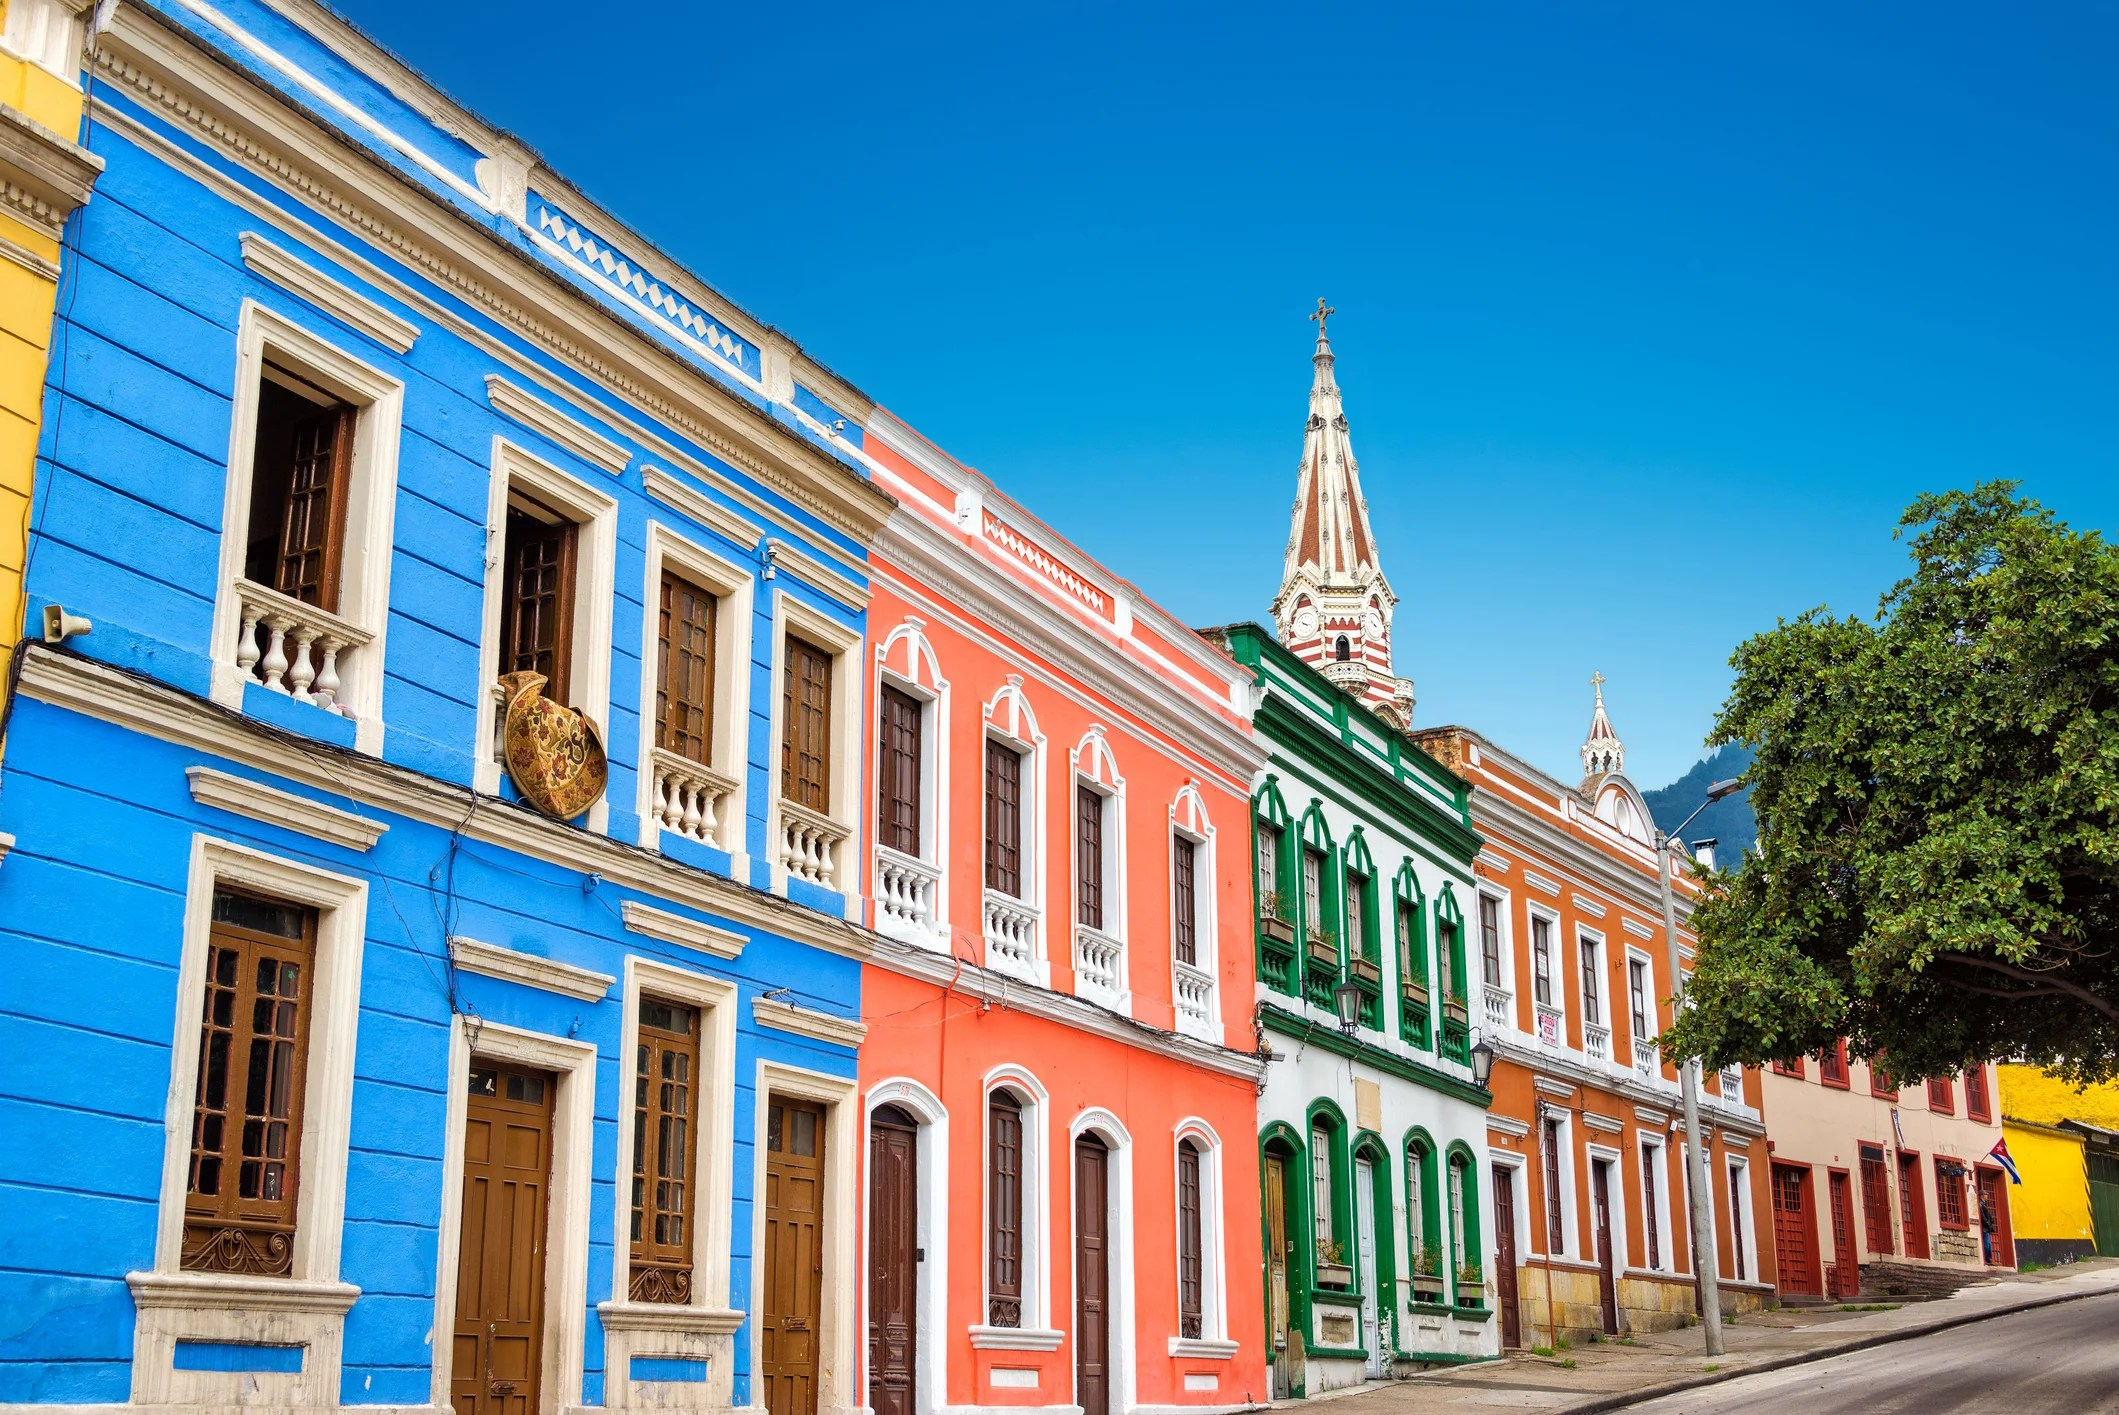 Deal Alert: US to Colombia on Full-Service Airlines From $238 Round-Trip